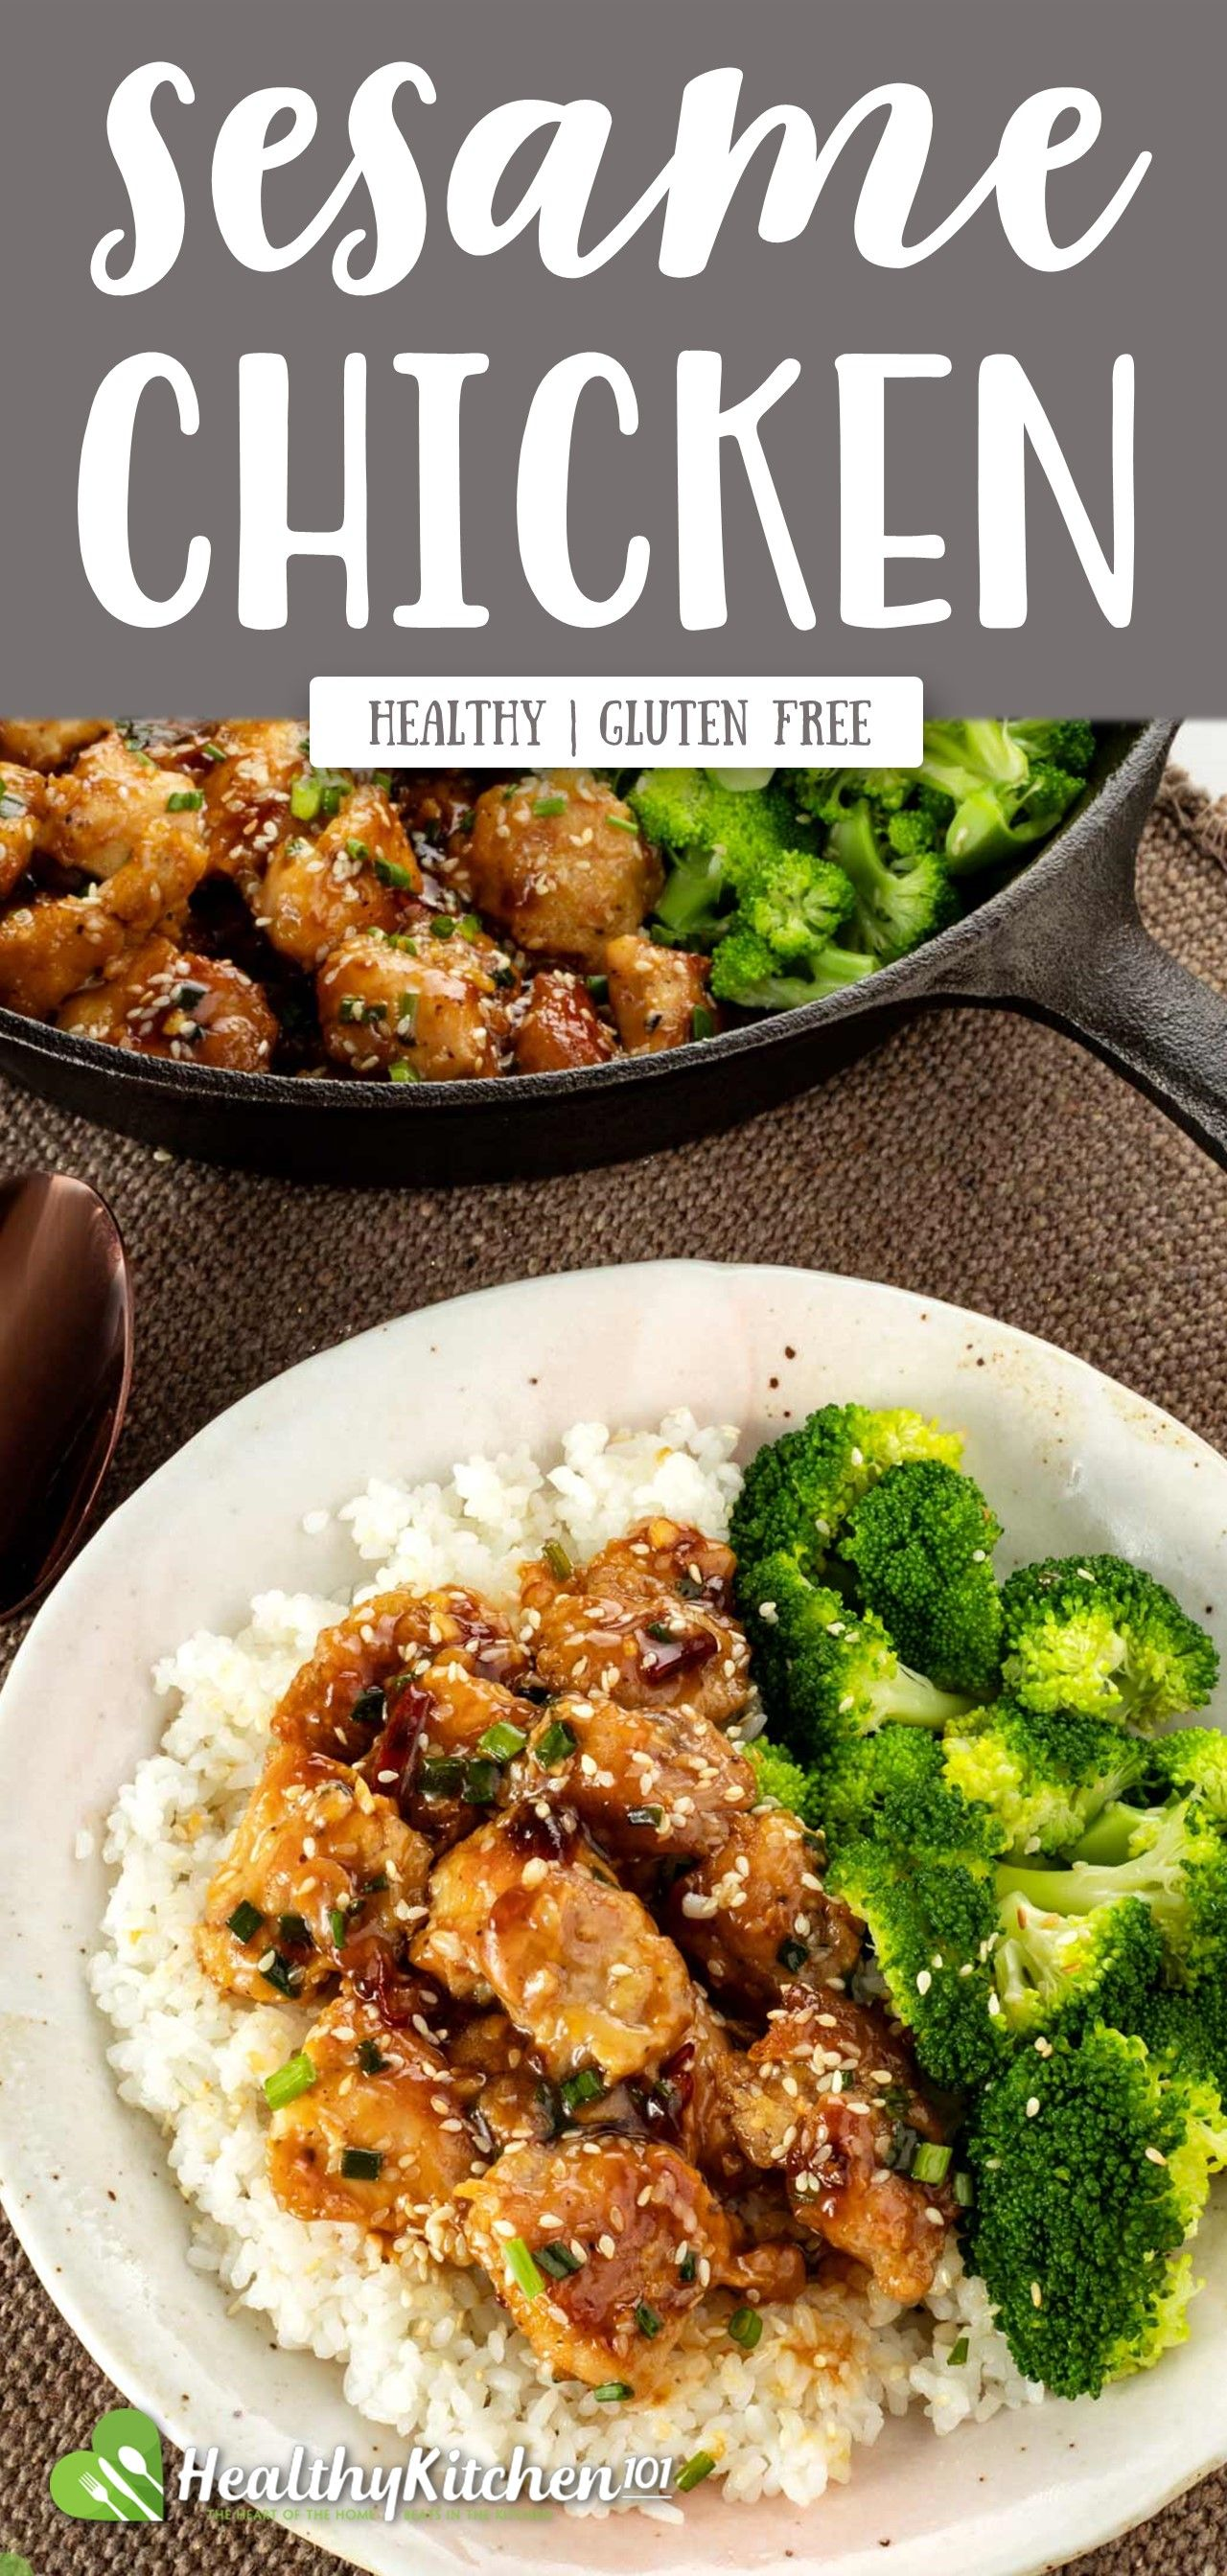 Healthy Eating Sesame Chicken Recipe A Well Known Asian Dish Gluten Free Healthy Chinese Recipes Sesame Chicken Recipe Healthy Chicken Recipes